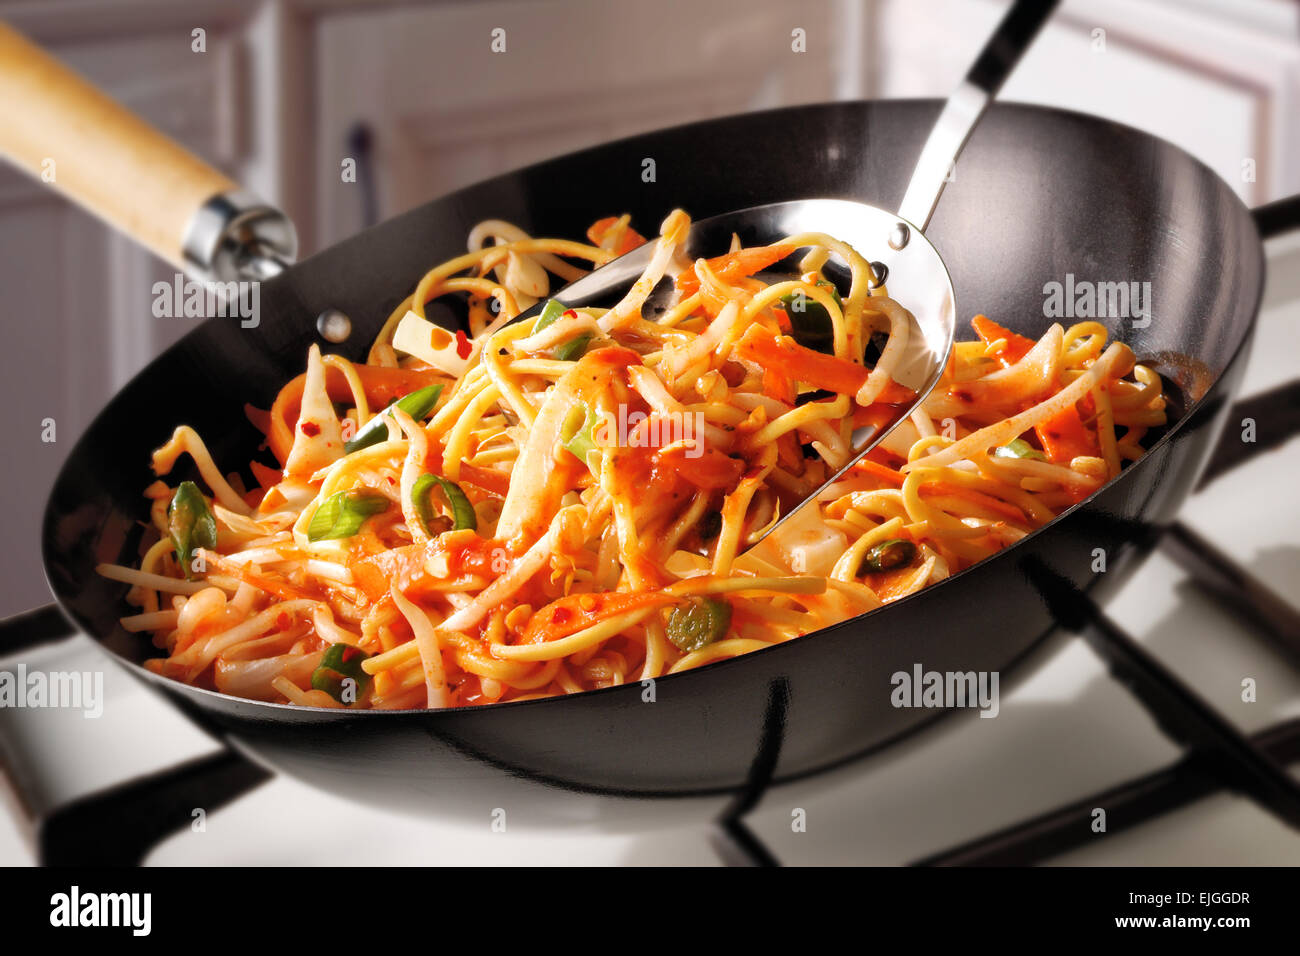 Stir Fry Noodles, carrots & Bean Shoots being cooked - Stock Image